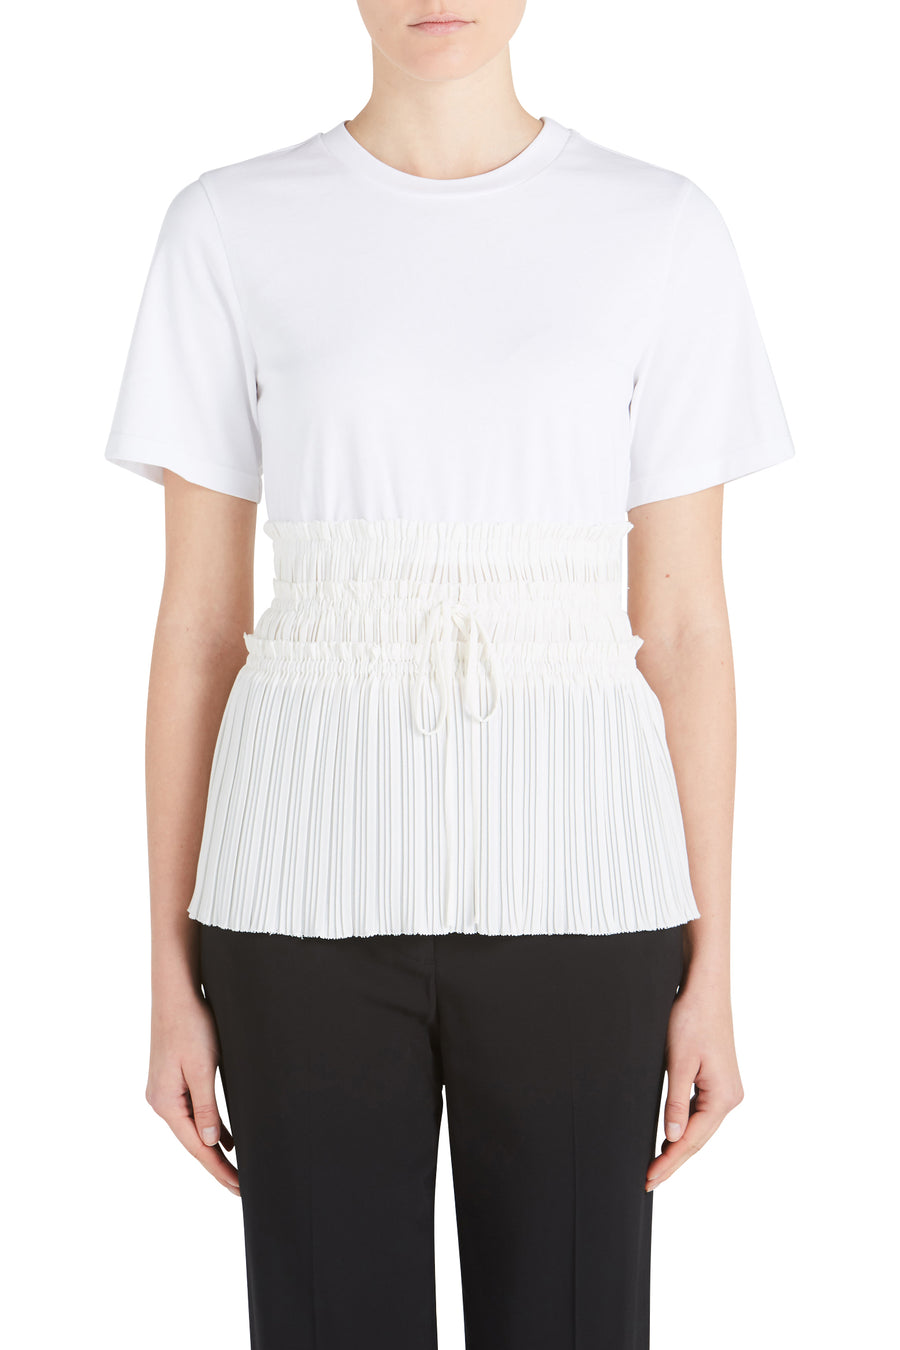 SS TSHIRT W/ PLEATED WAIST